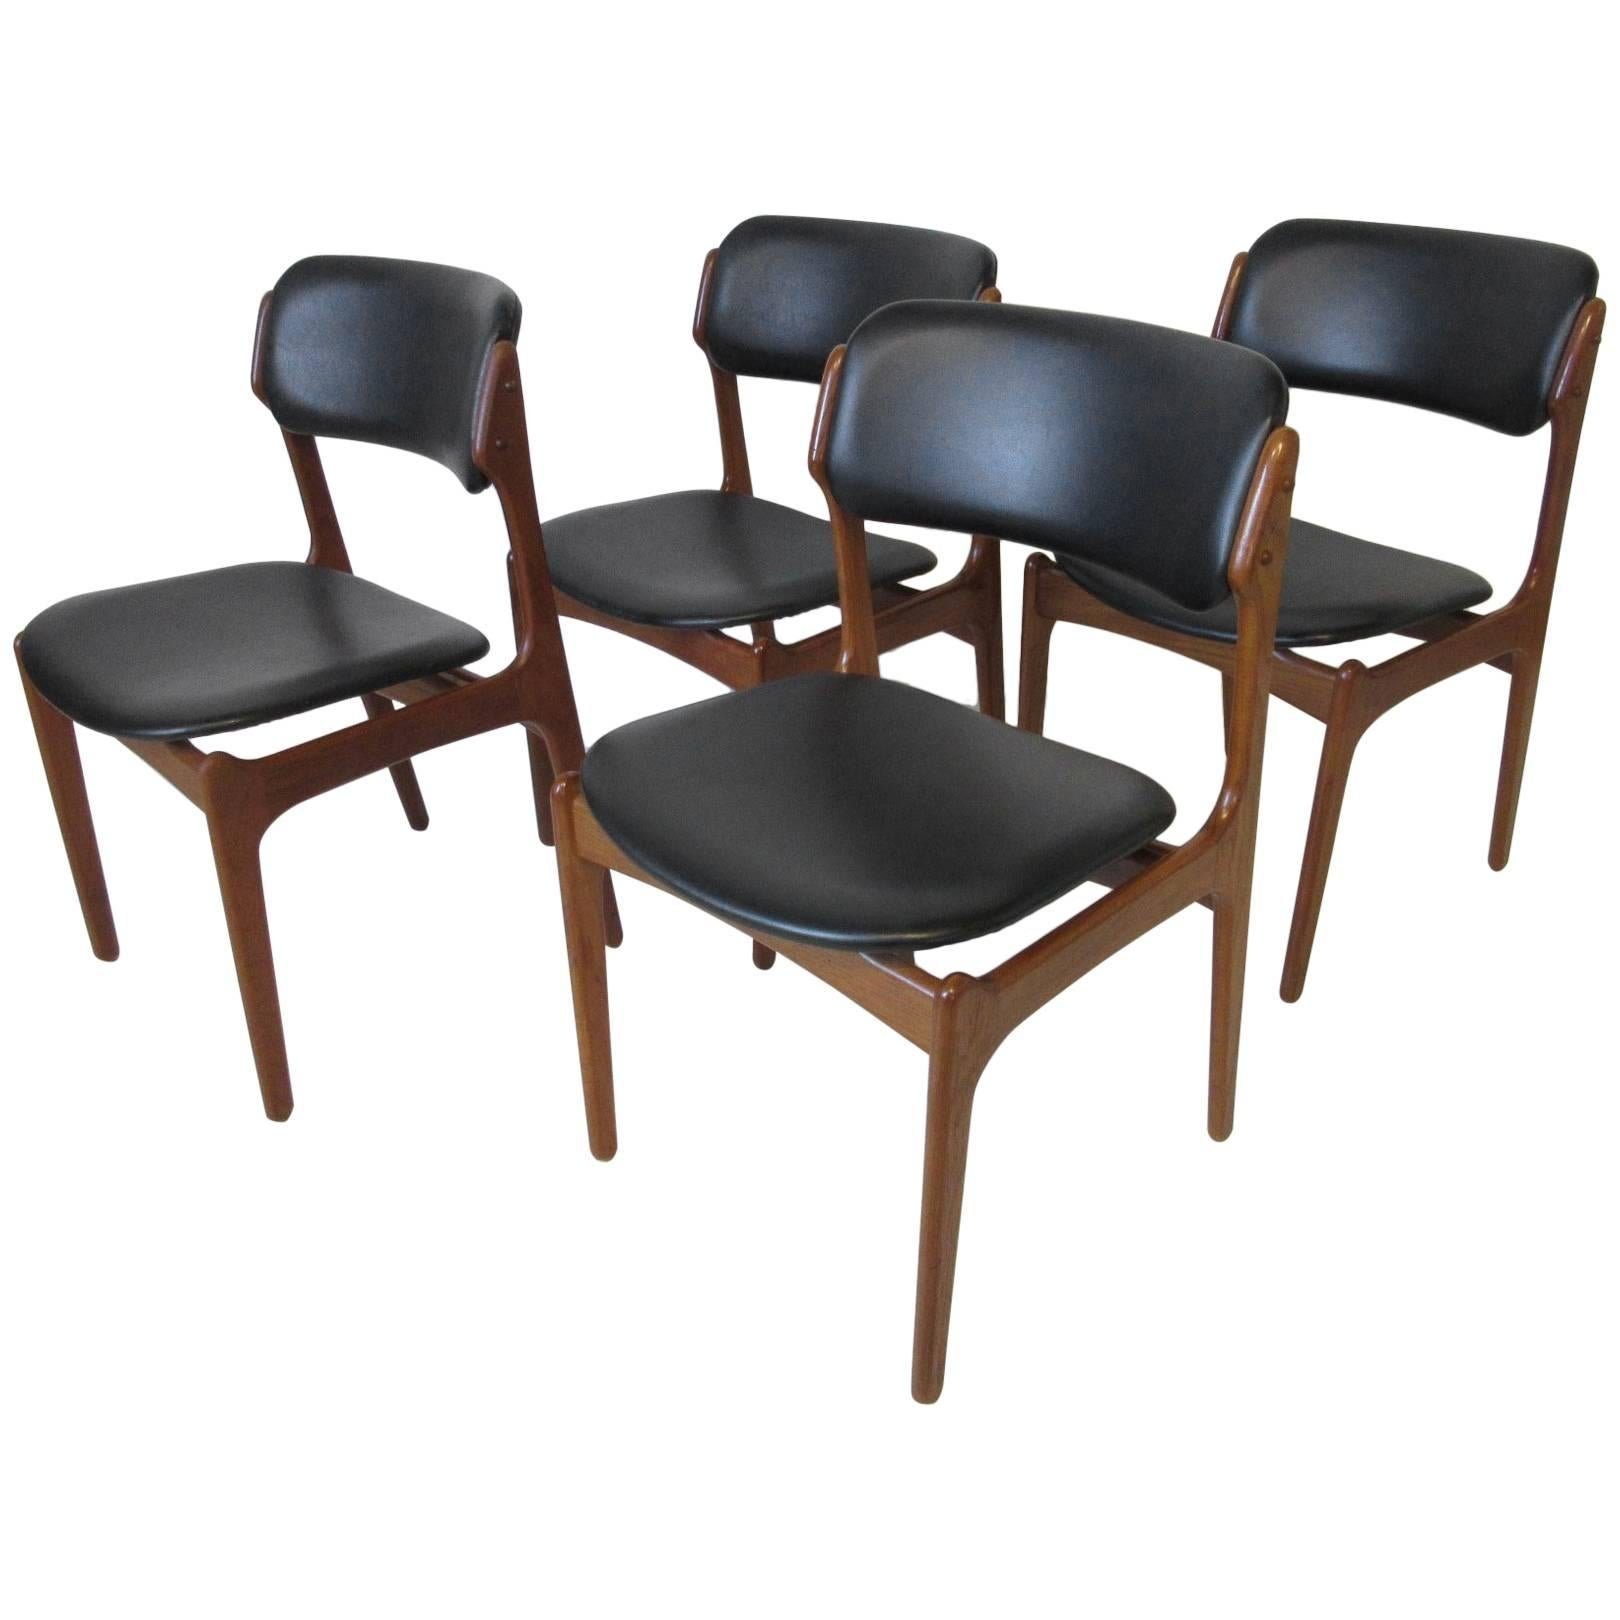 Eric Buck Danish Teak Wood Dining Chairs For Sale at 1stdibs